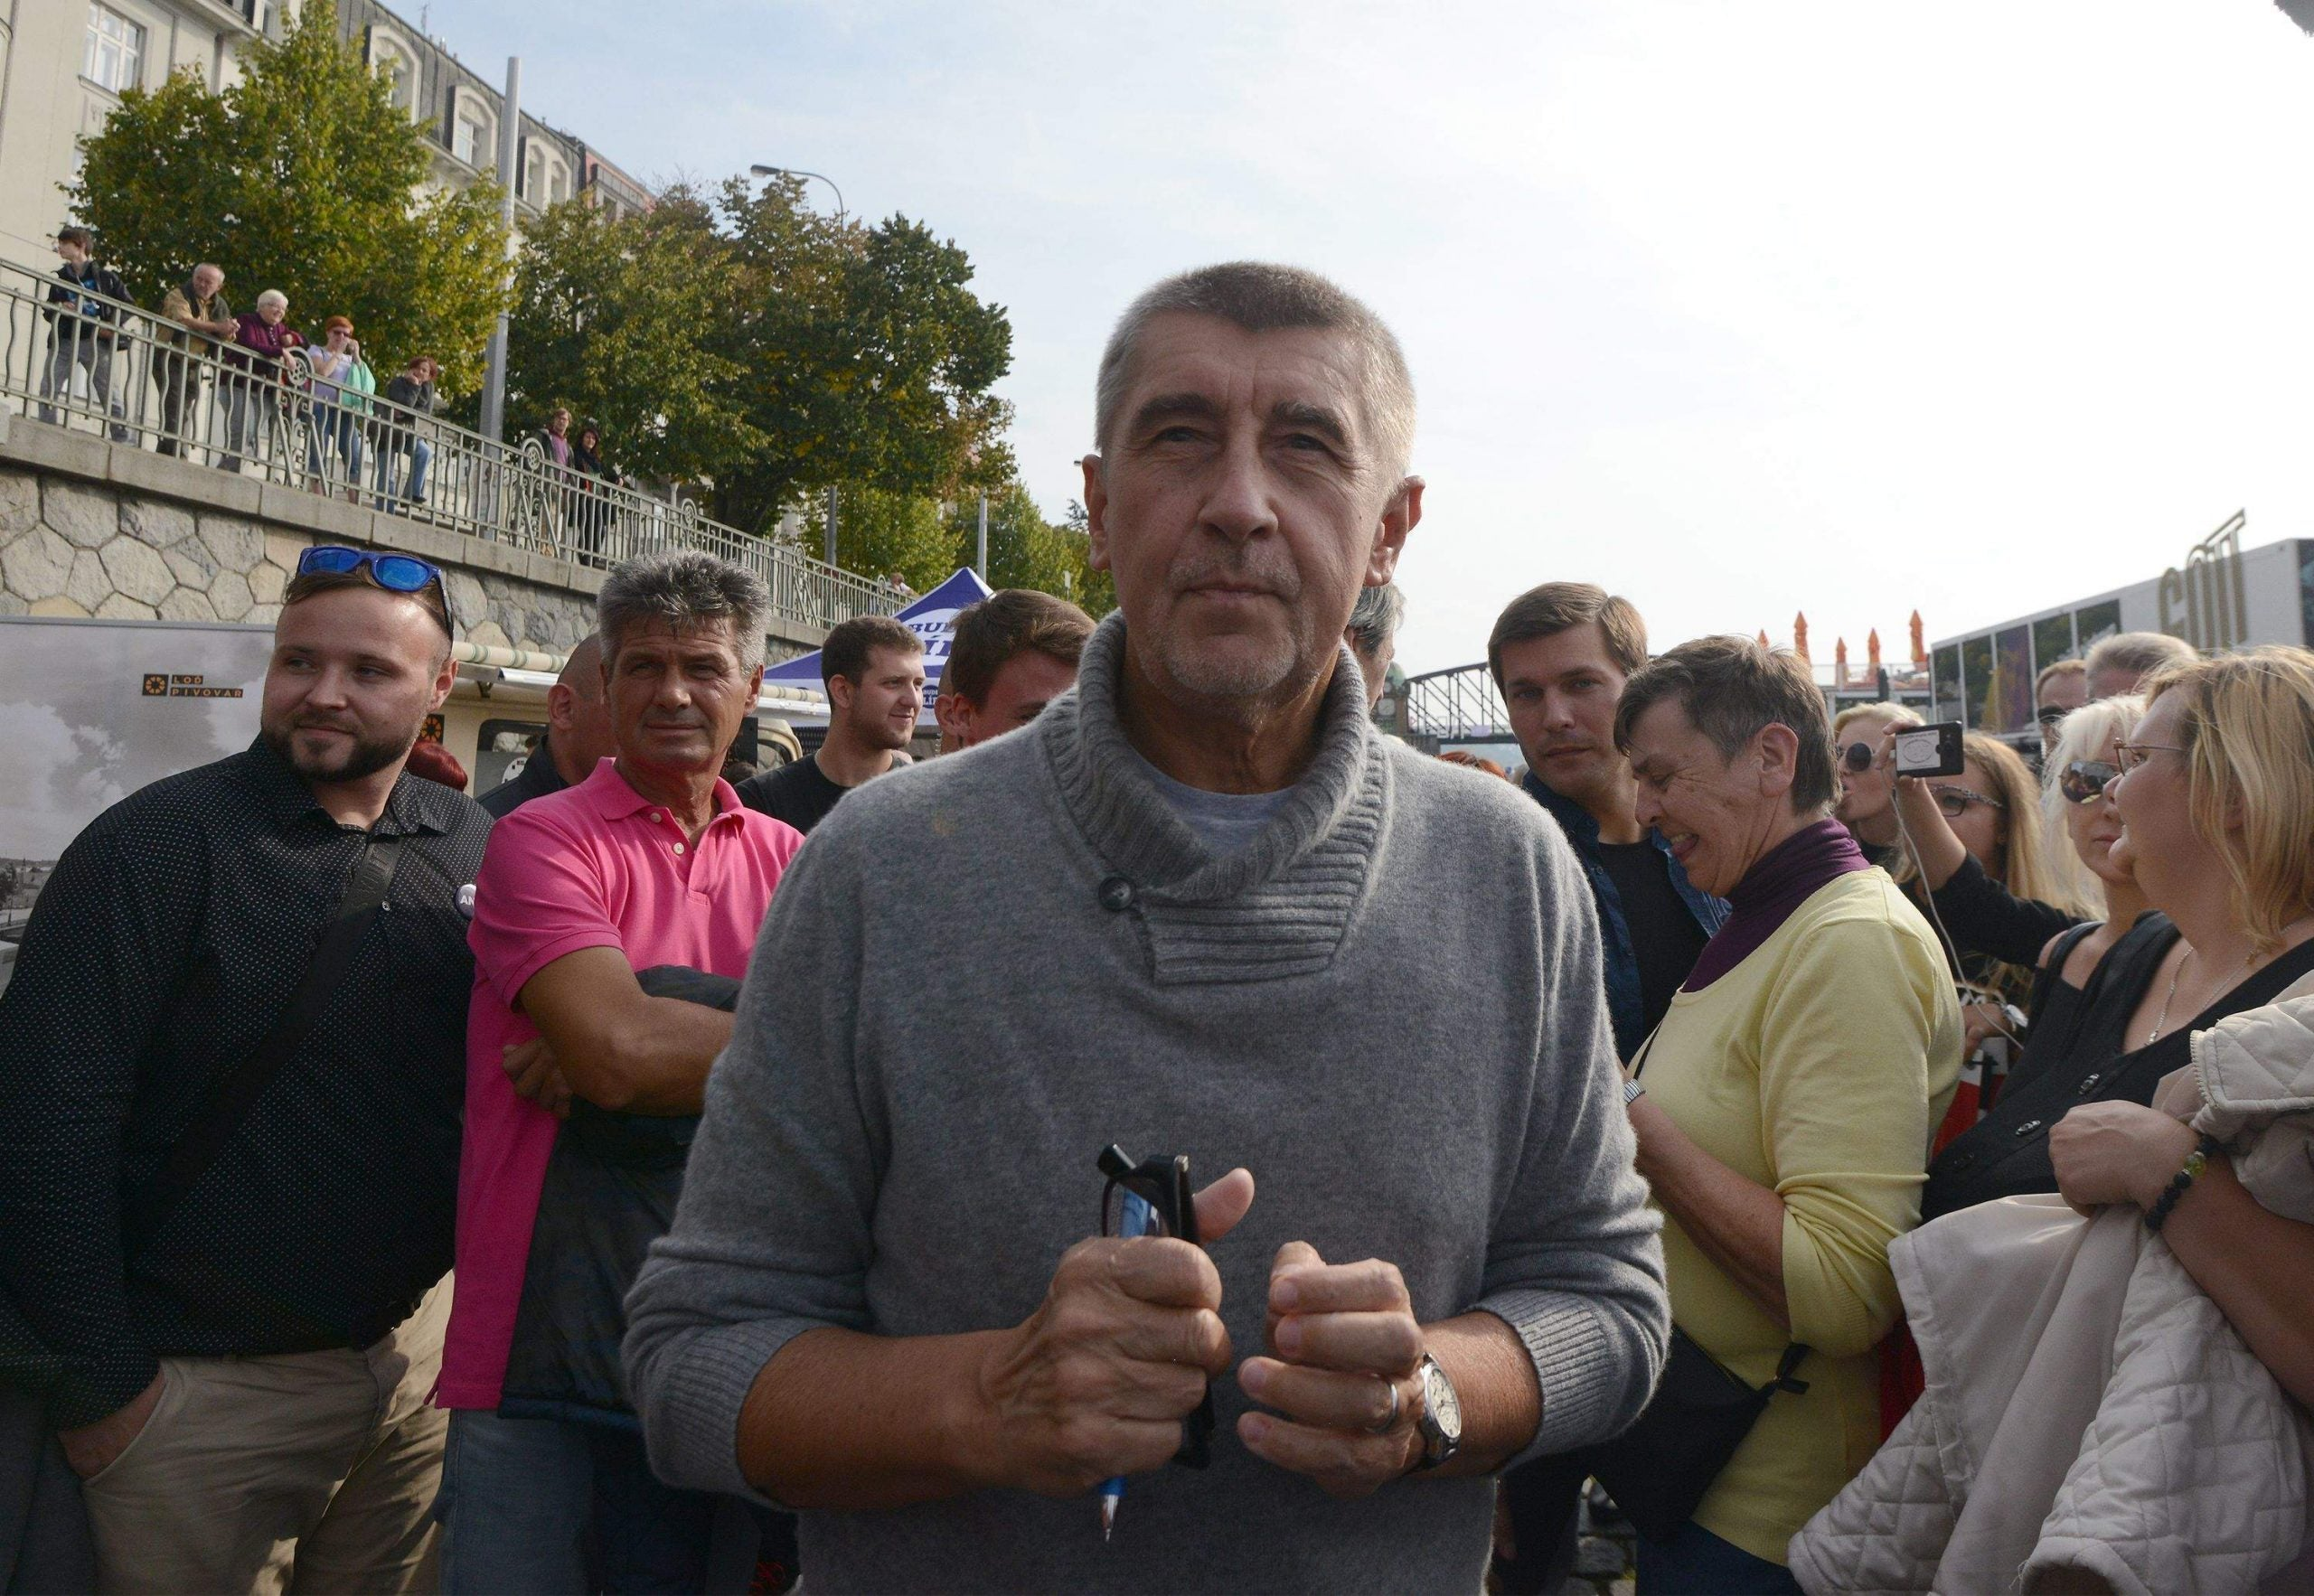 The Czech Trump shoots for power: the rise and rise of Andrej Babiš